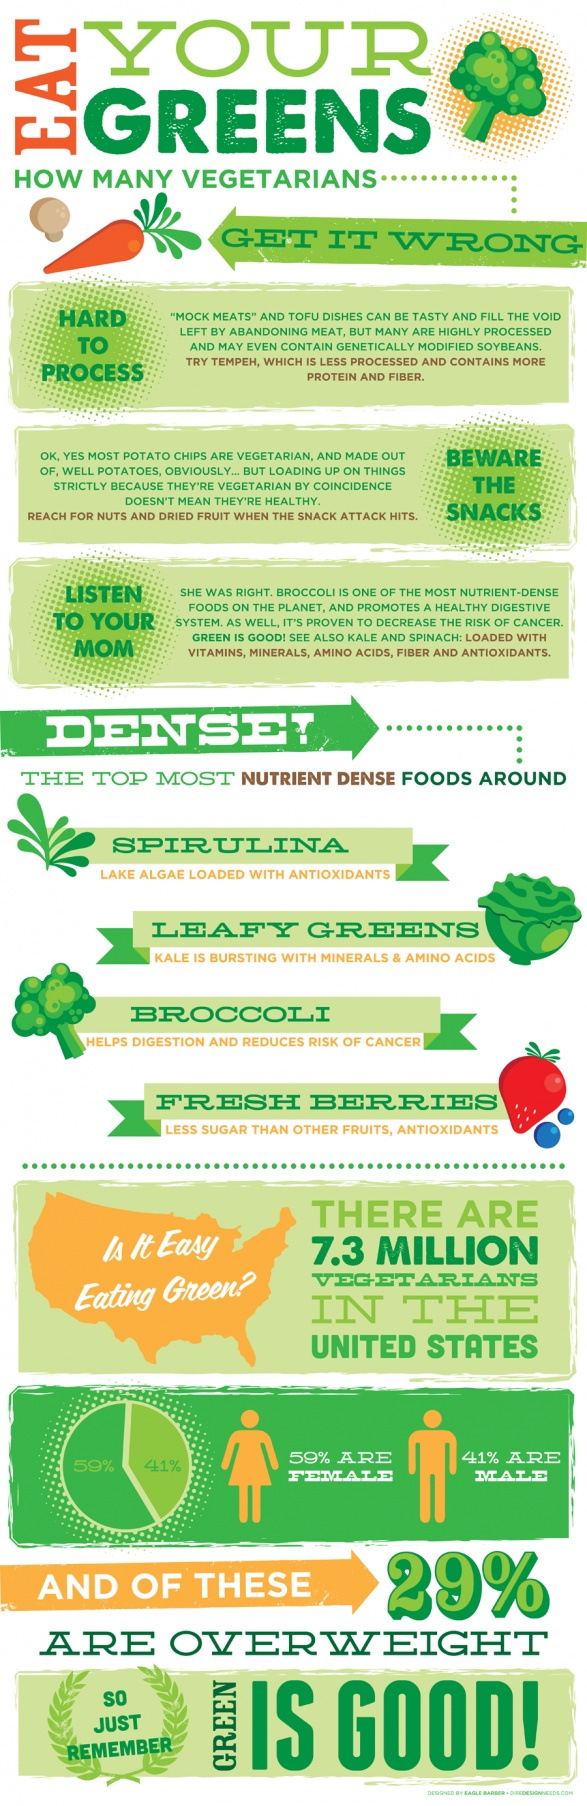 Eat Your Greenz - Infographic